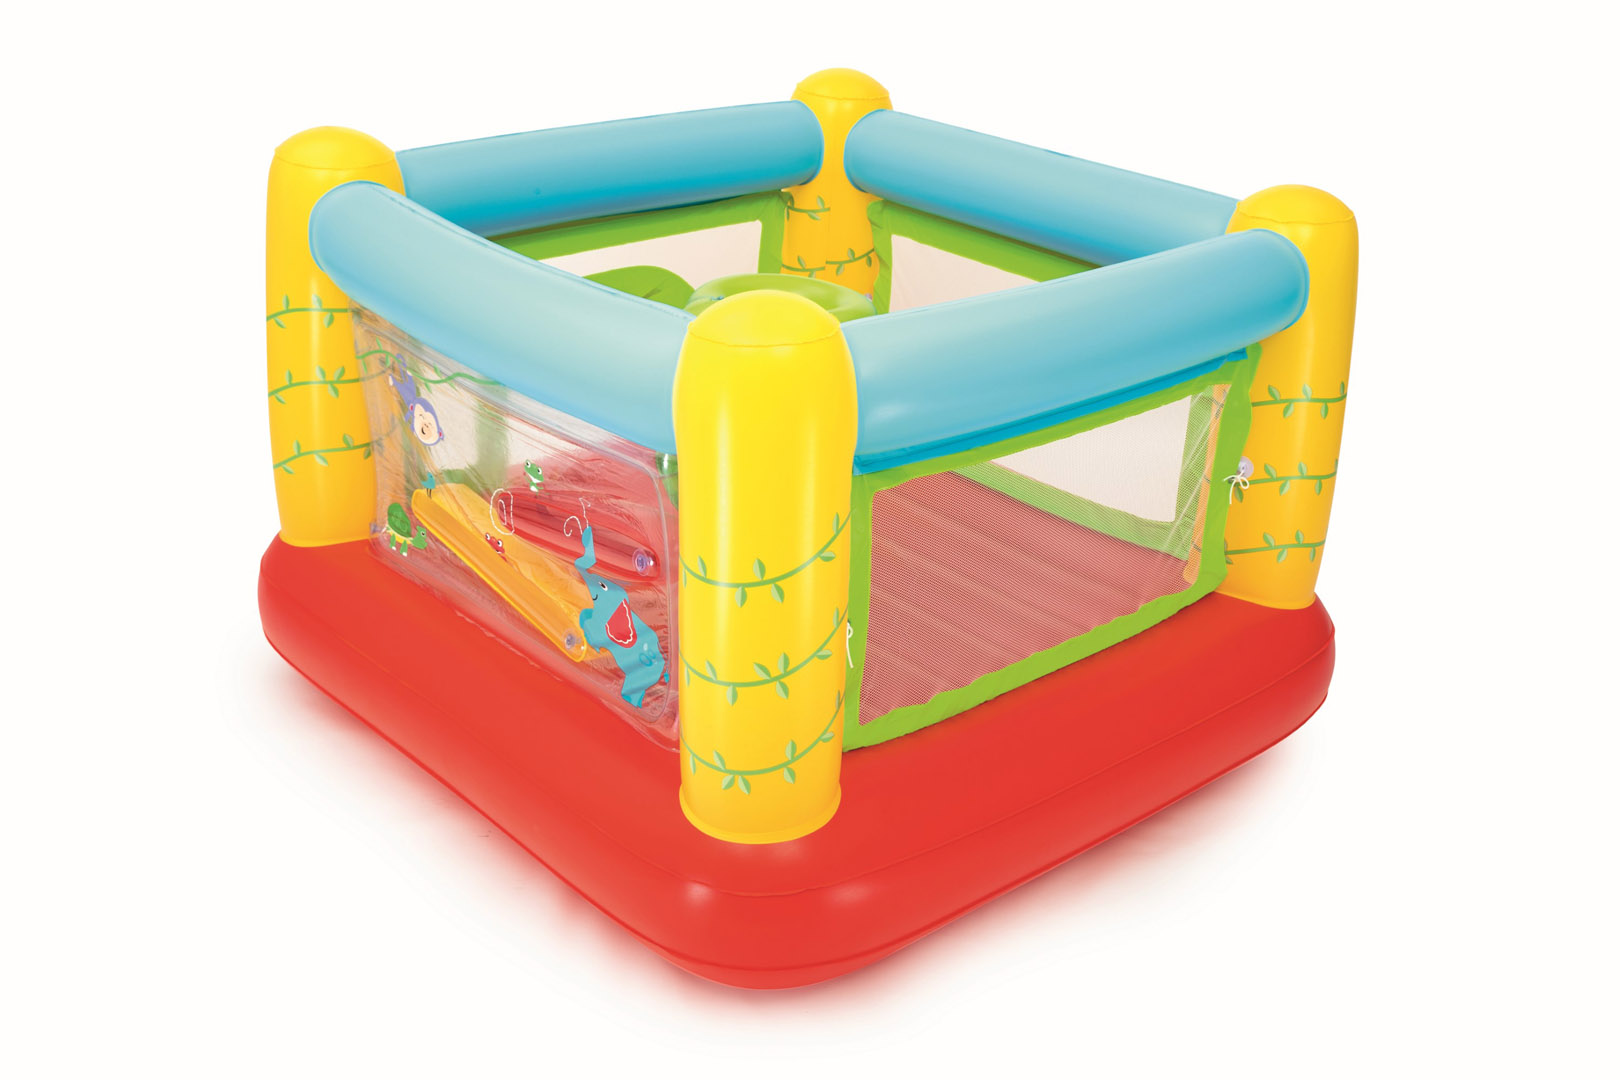 Bestway Fisher-Price Jumptacular Bouncer 93542